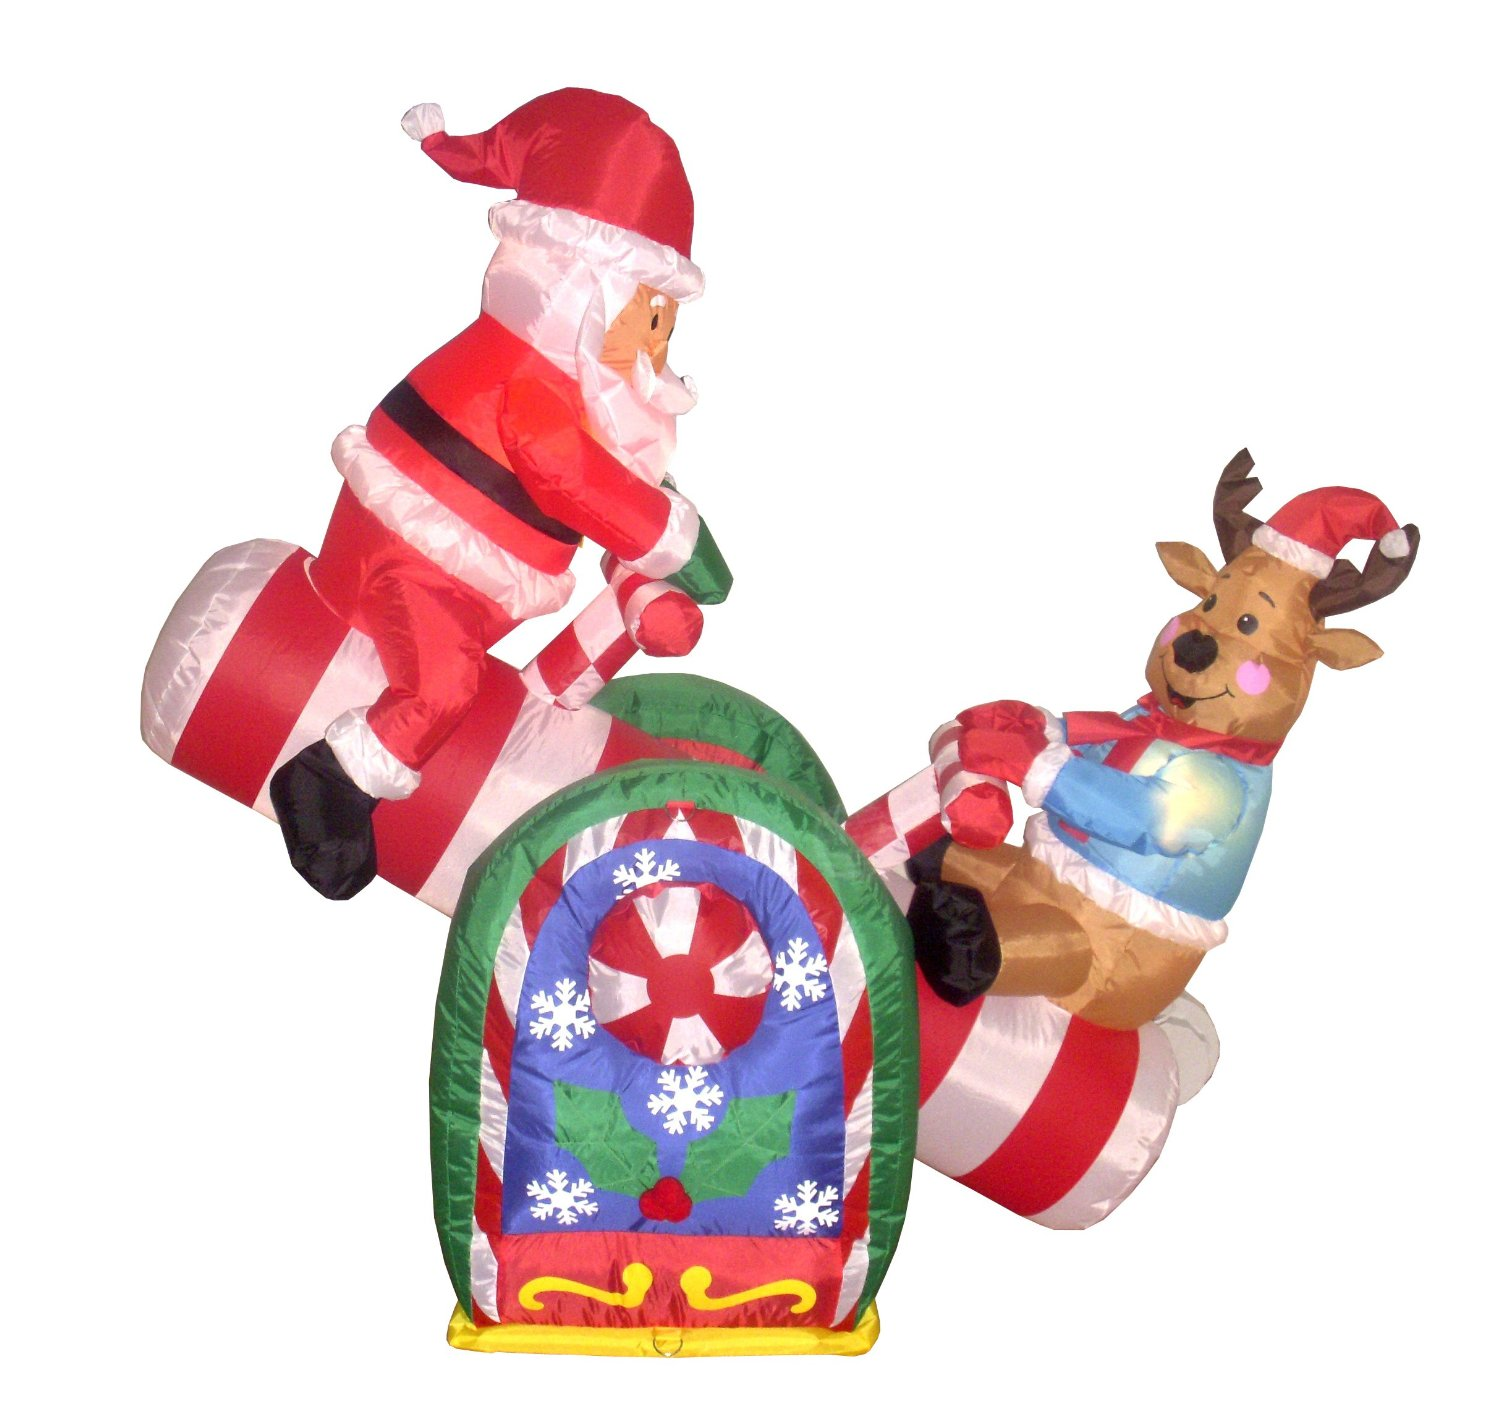 animated inflatable santa and reindeer on a teeter totter - Animated Christmas Decorations